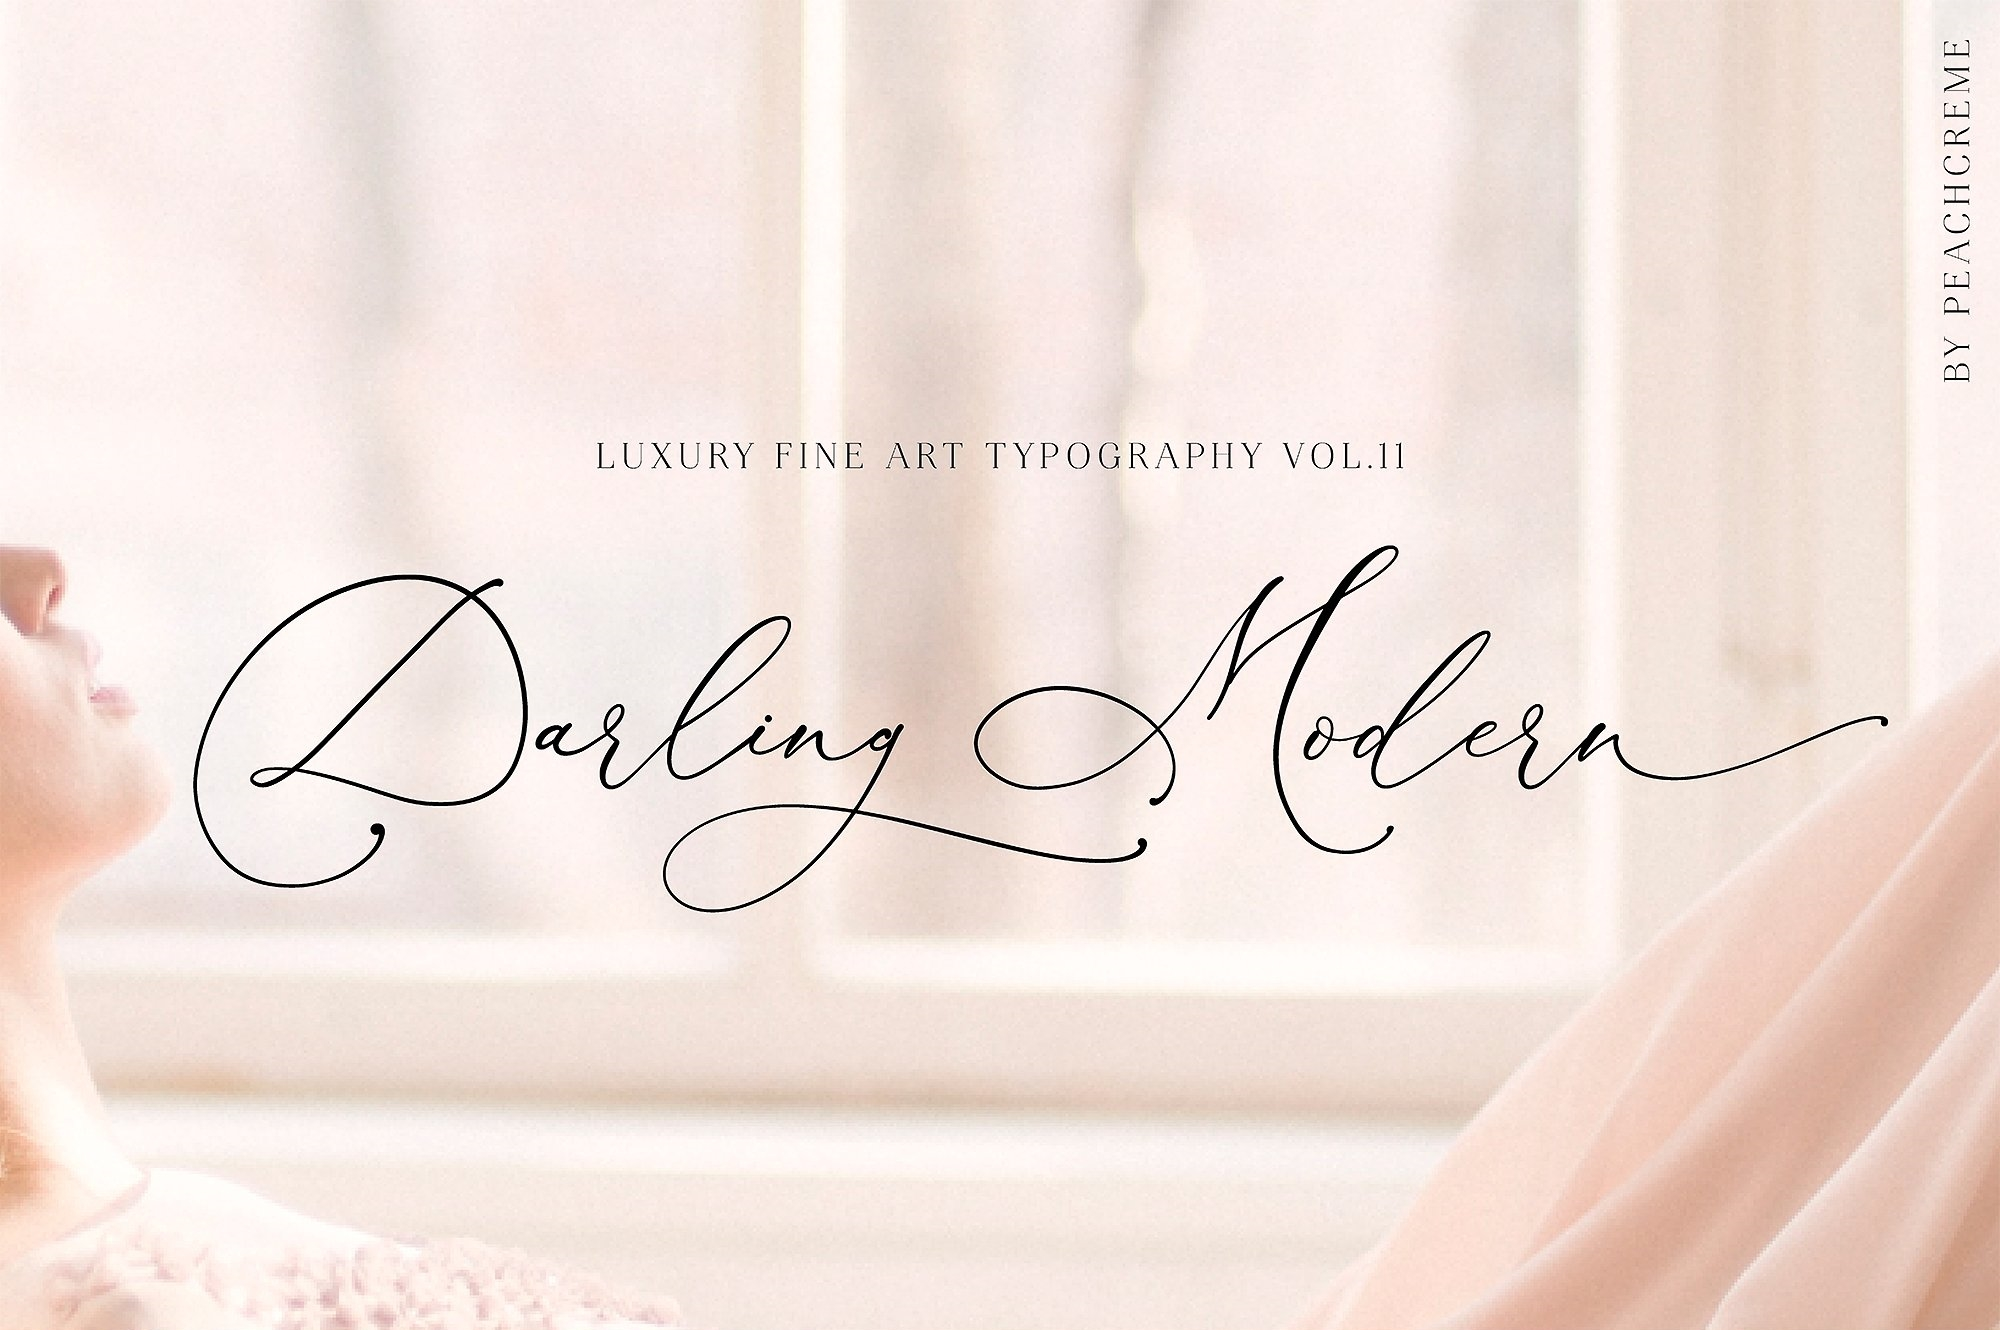 Darling Modern Luxury Font - Check out my list with 10 of the BEST Script Fonts from Creative Market for branding your projects in 2019. It is never too late to add charm to your blog! Art, Fonts and Calligraphy, Typography, Handwritten Fonts, Script Fonts, Modern Fonts, Cursive Fonts, Design Fonts, Calligraphy Fonts, Simple Fonts, Elegant Fonts, Professional Fonts, Beautiful Fonts